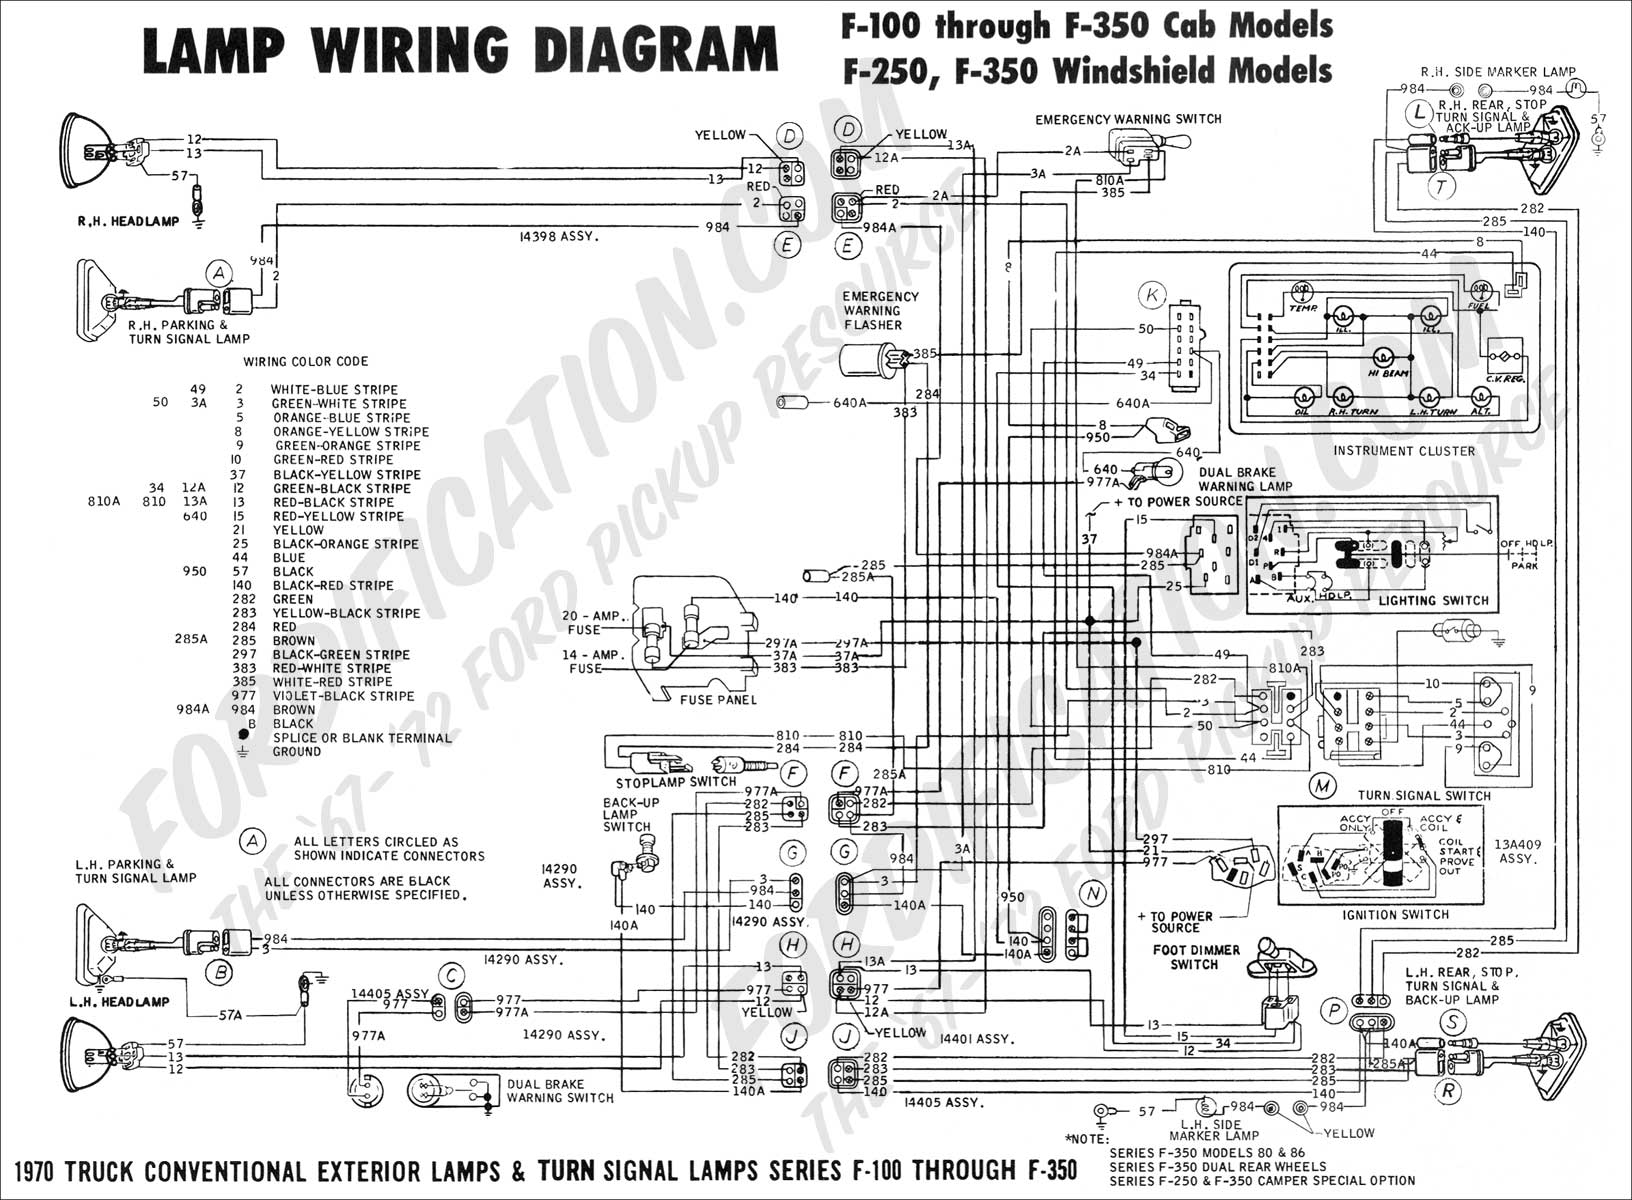 wiring diagram_70ext lights01?resize=665%2C489 wiring harness diagram for 4610 ford tractor the wiring diagram ford wiring harness diagrams at soozxer.org